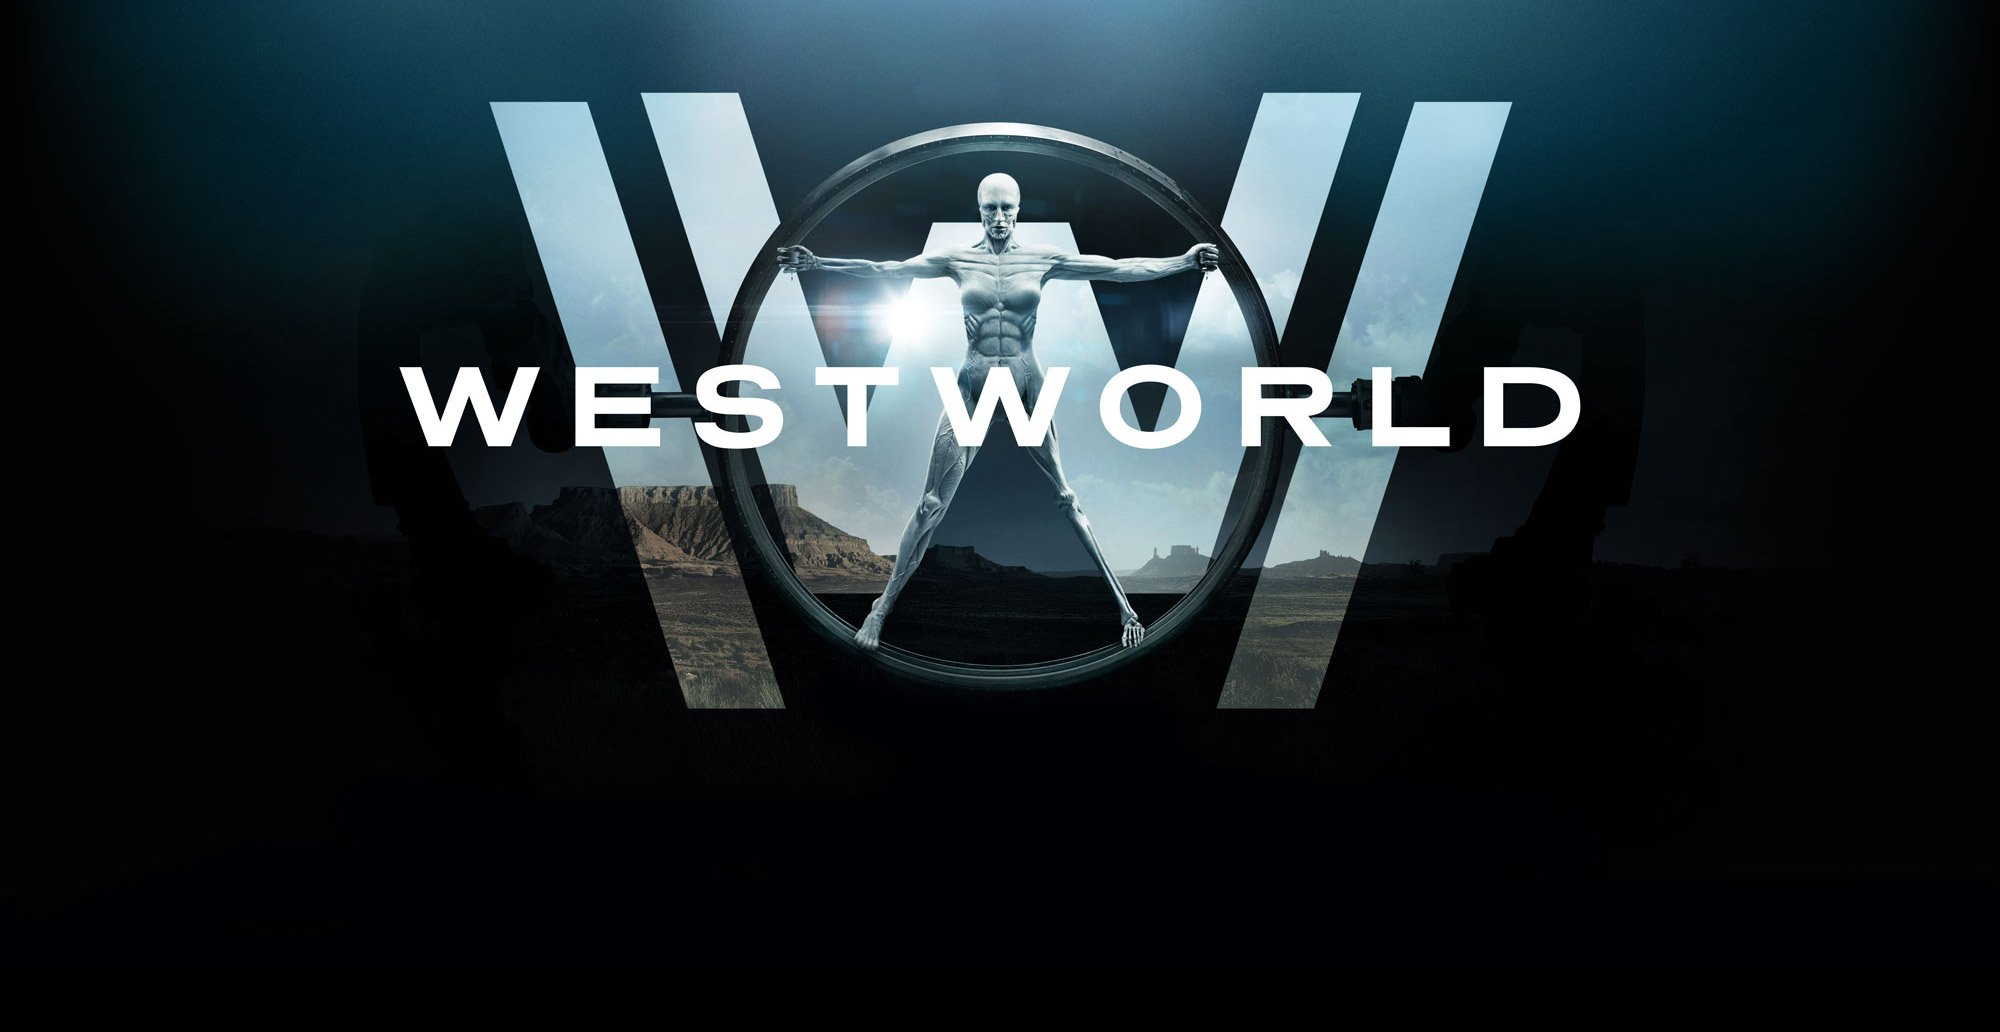 Westworld leading the golden age of television